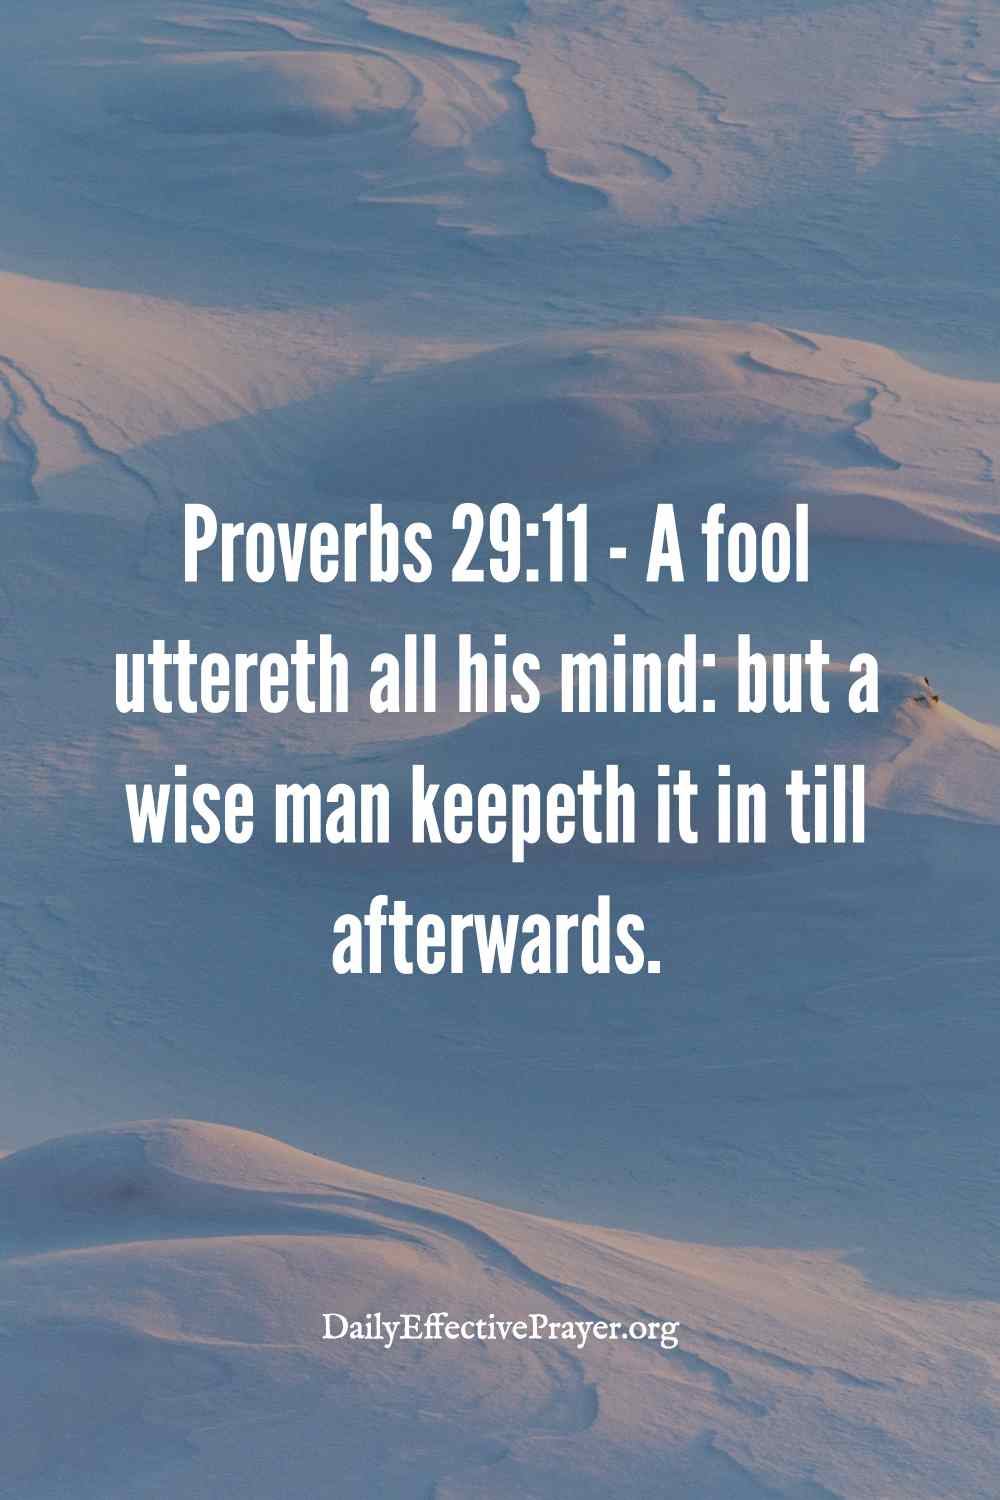 Proverbs 29:11 anger scripture.